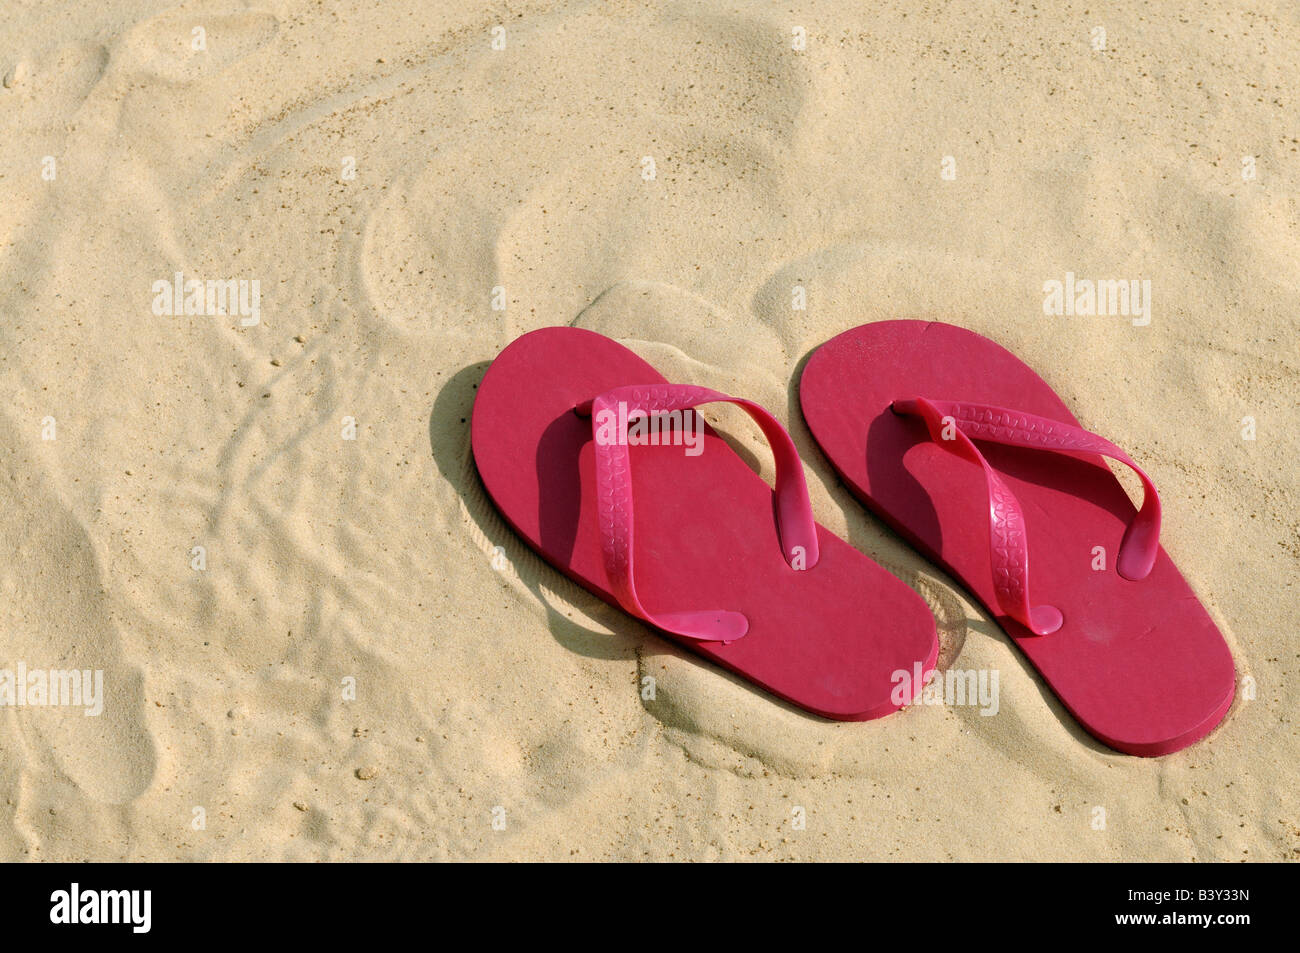 Pink flip flops on a beach - Stock Image